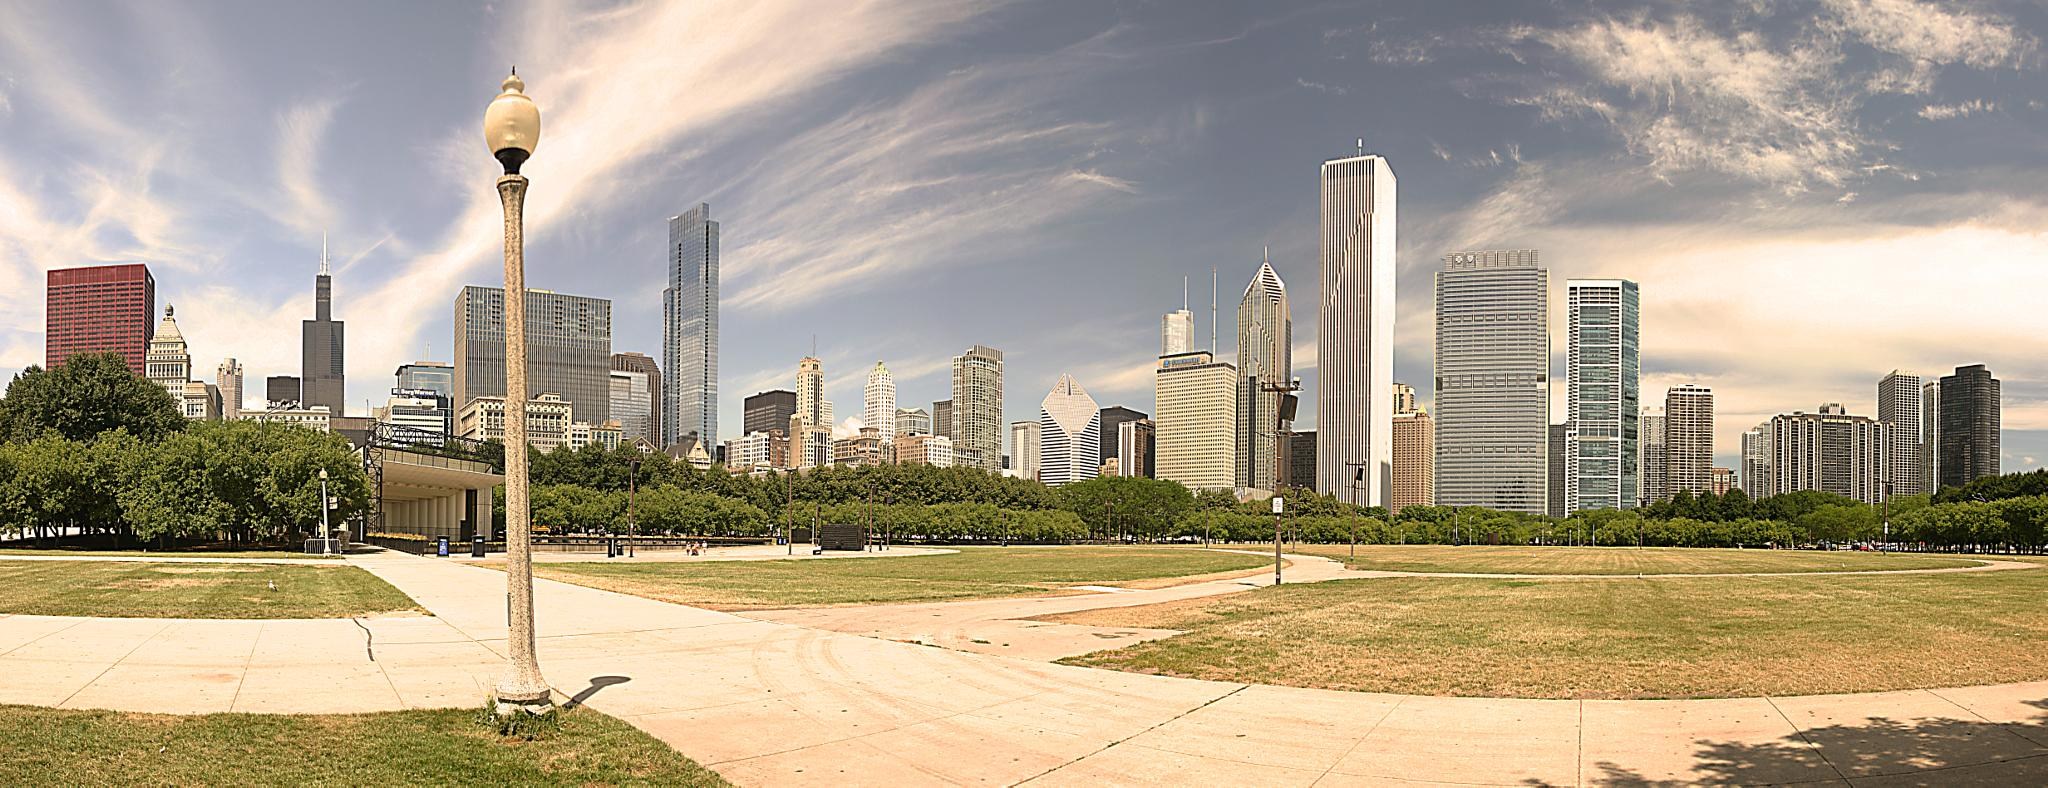 Grand Park Panoramic, Chicago. by ejdelamora